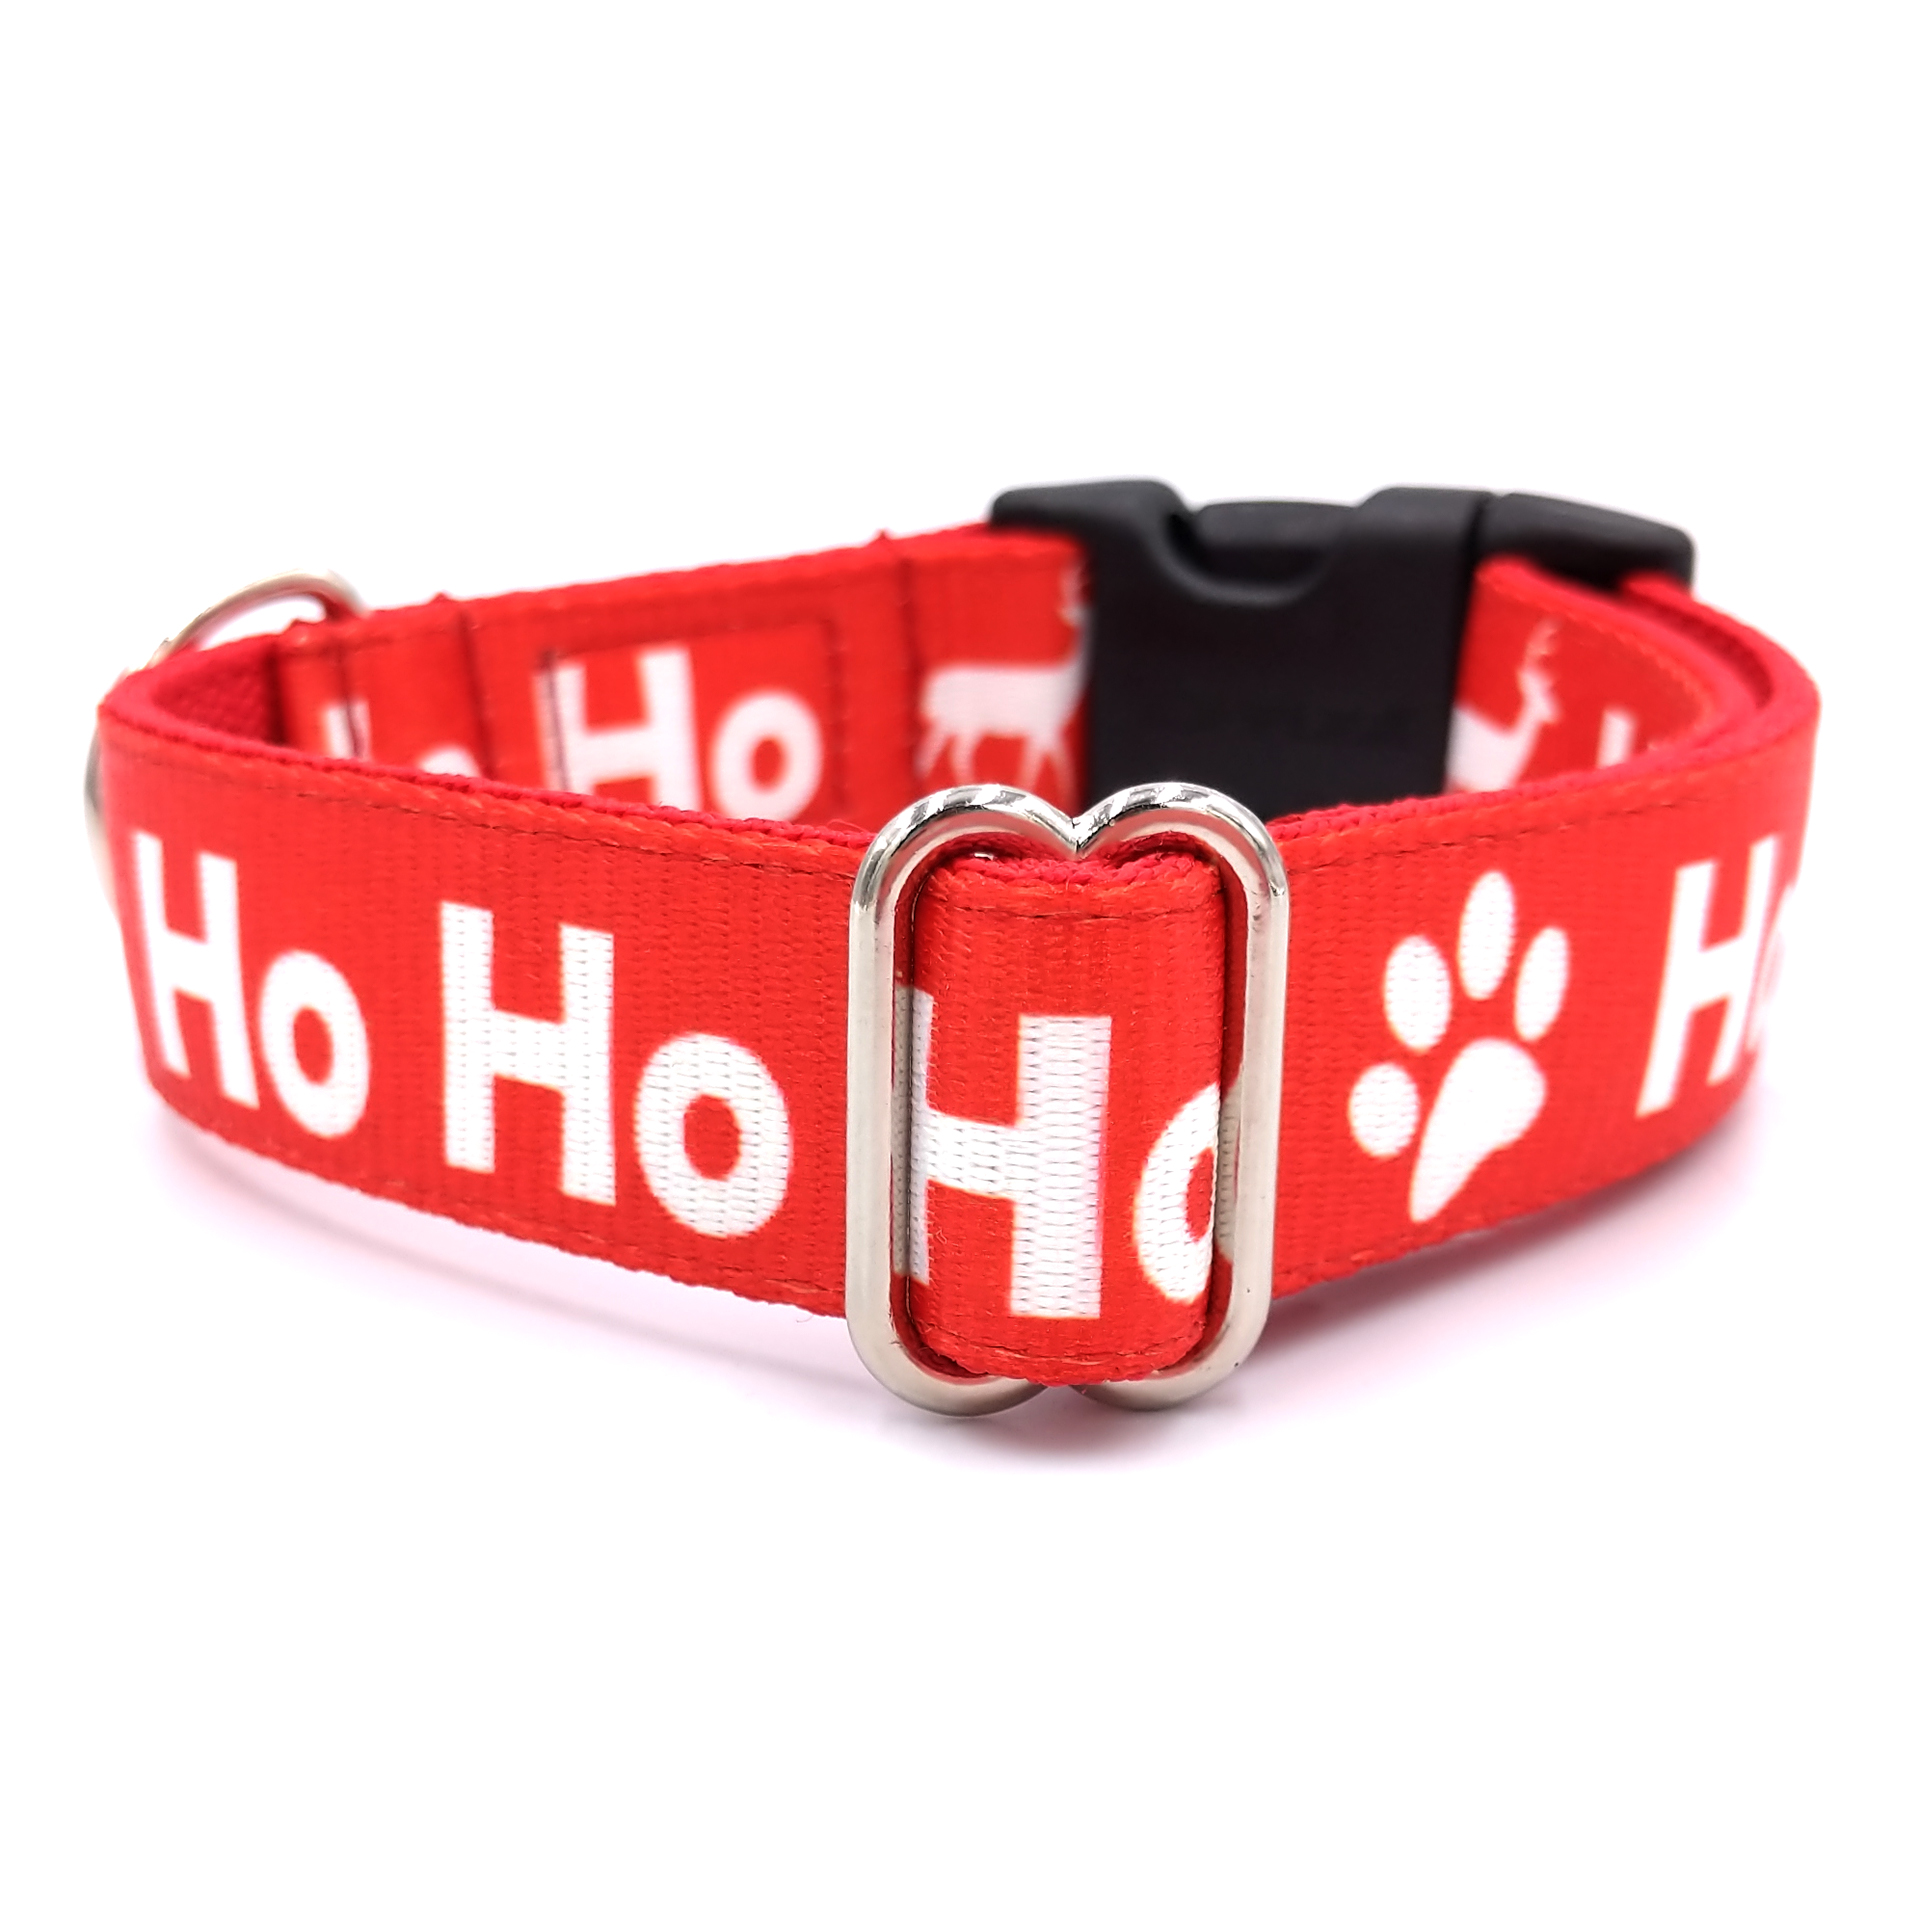 Hohoho dog collar